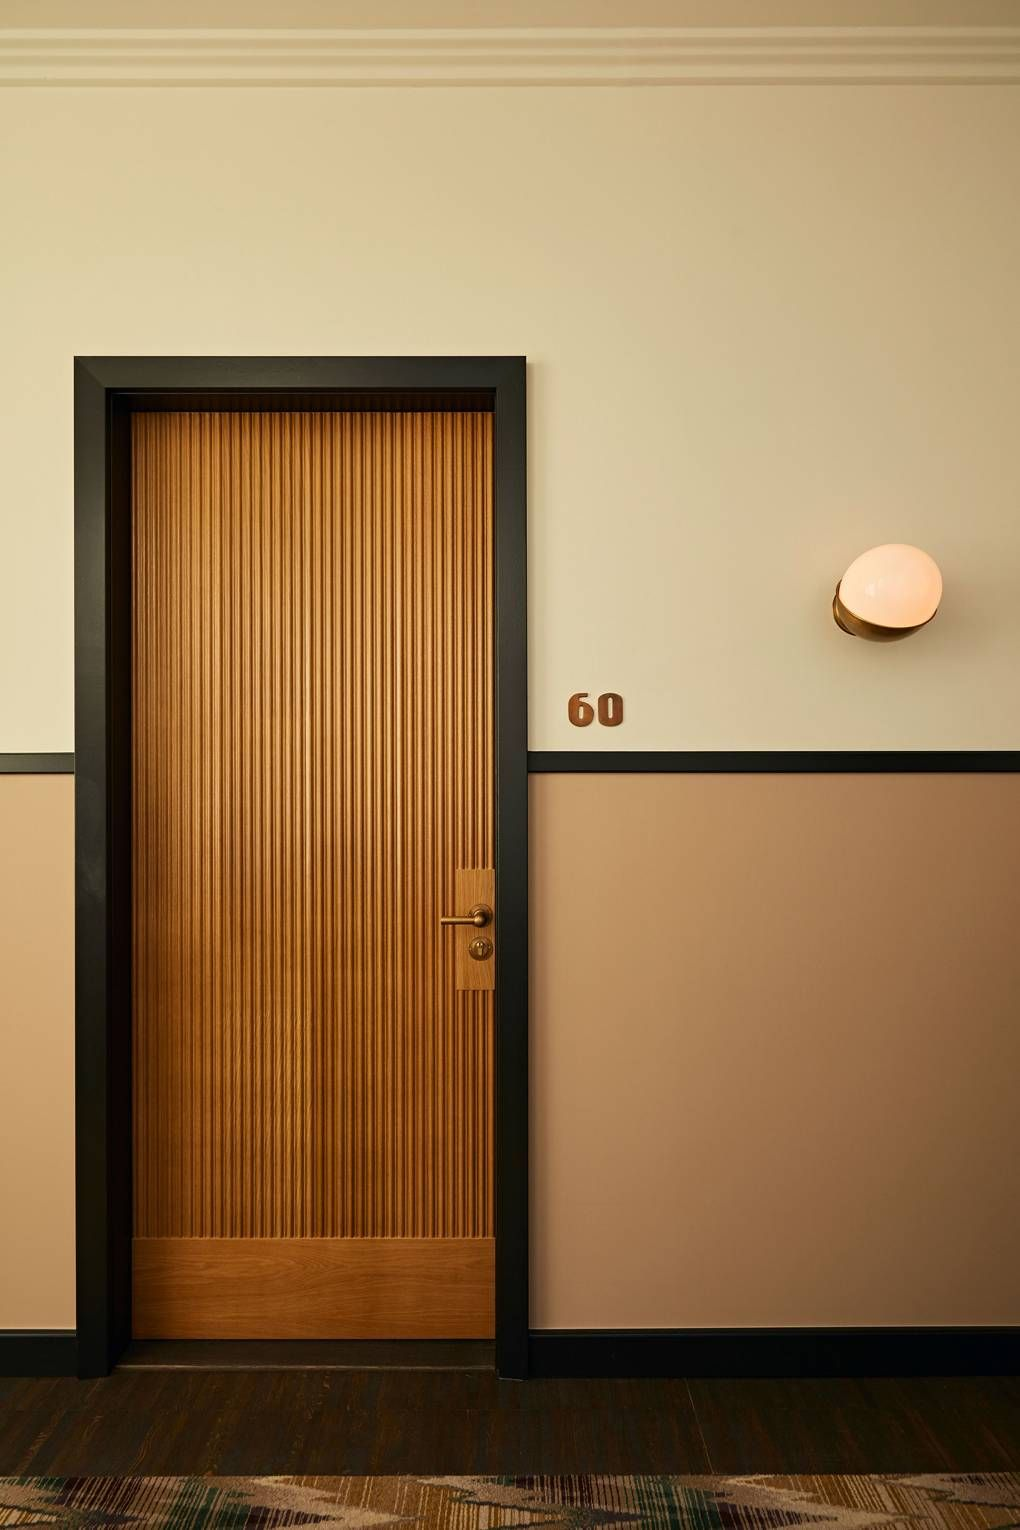 Image Result For Hotel Room Door Designs: Soho House Amsterdam Review: First In